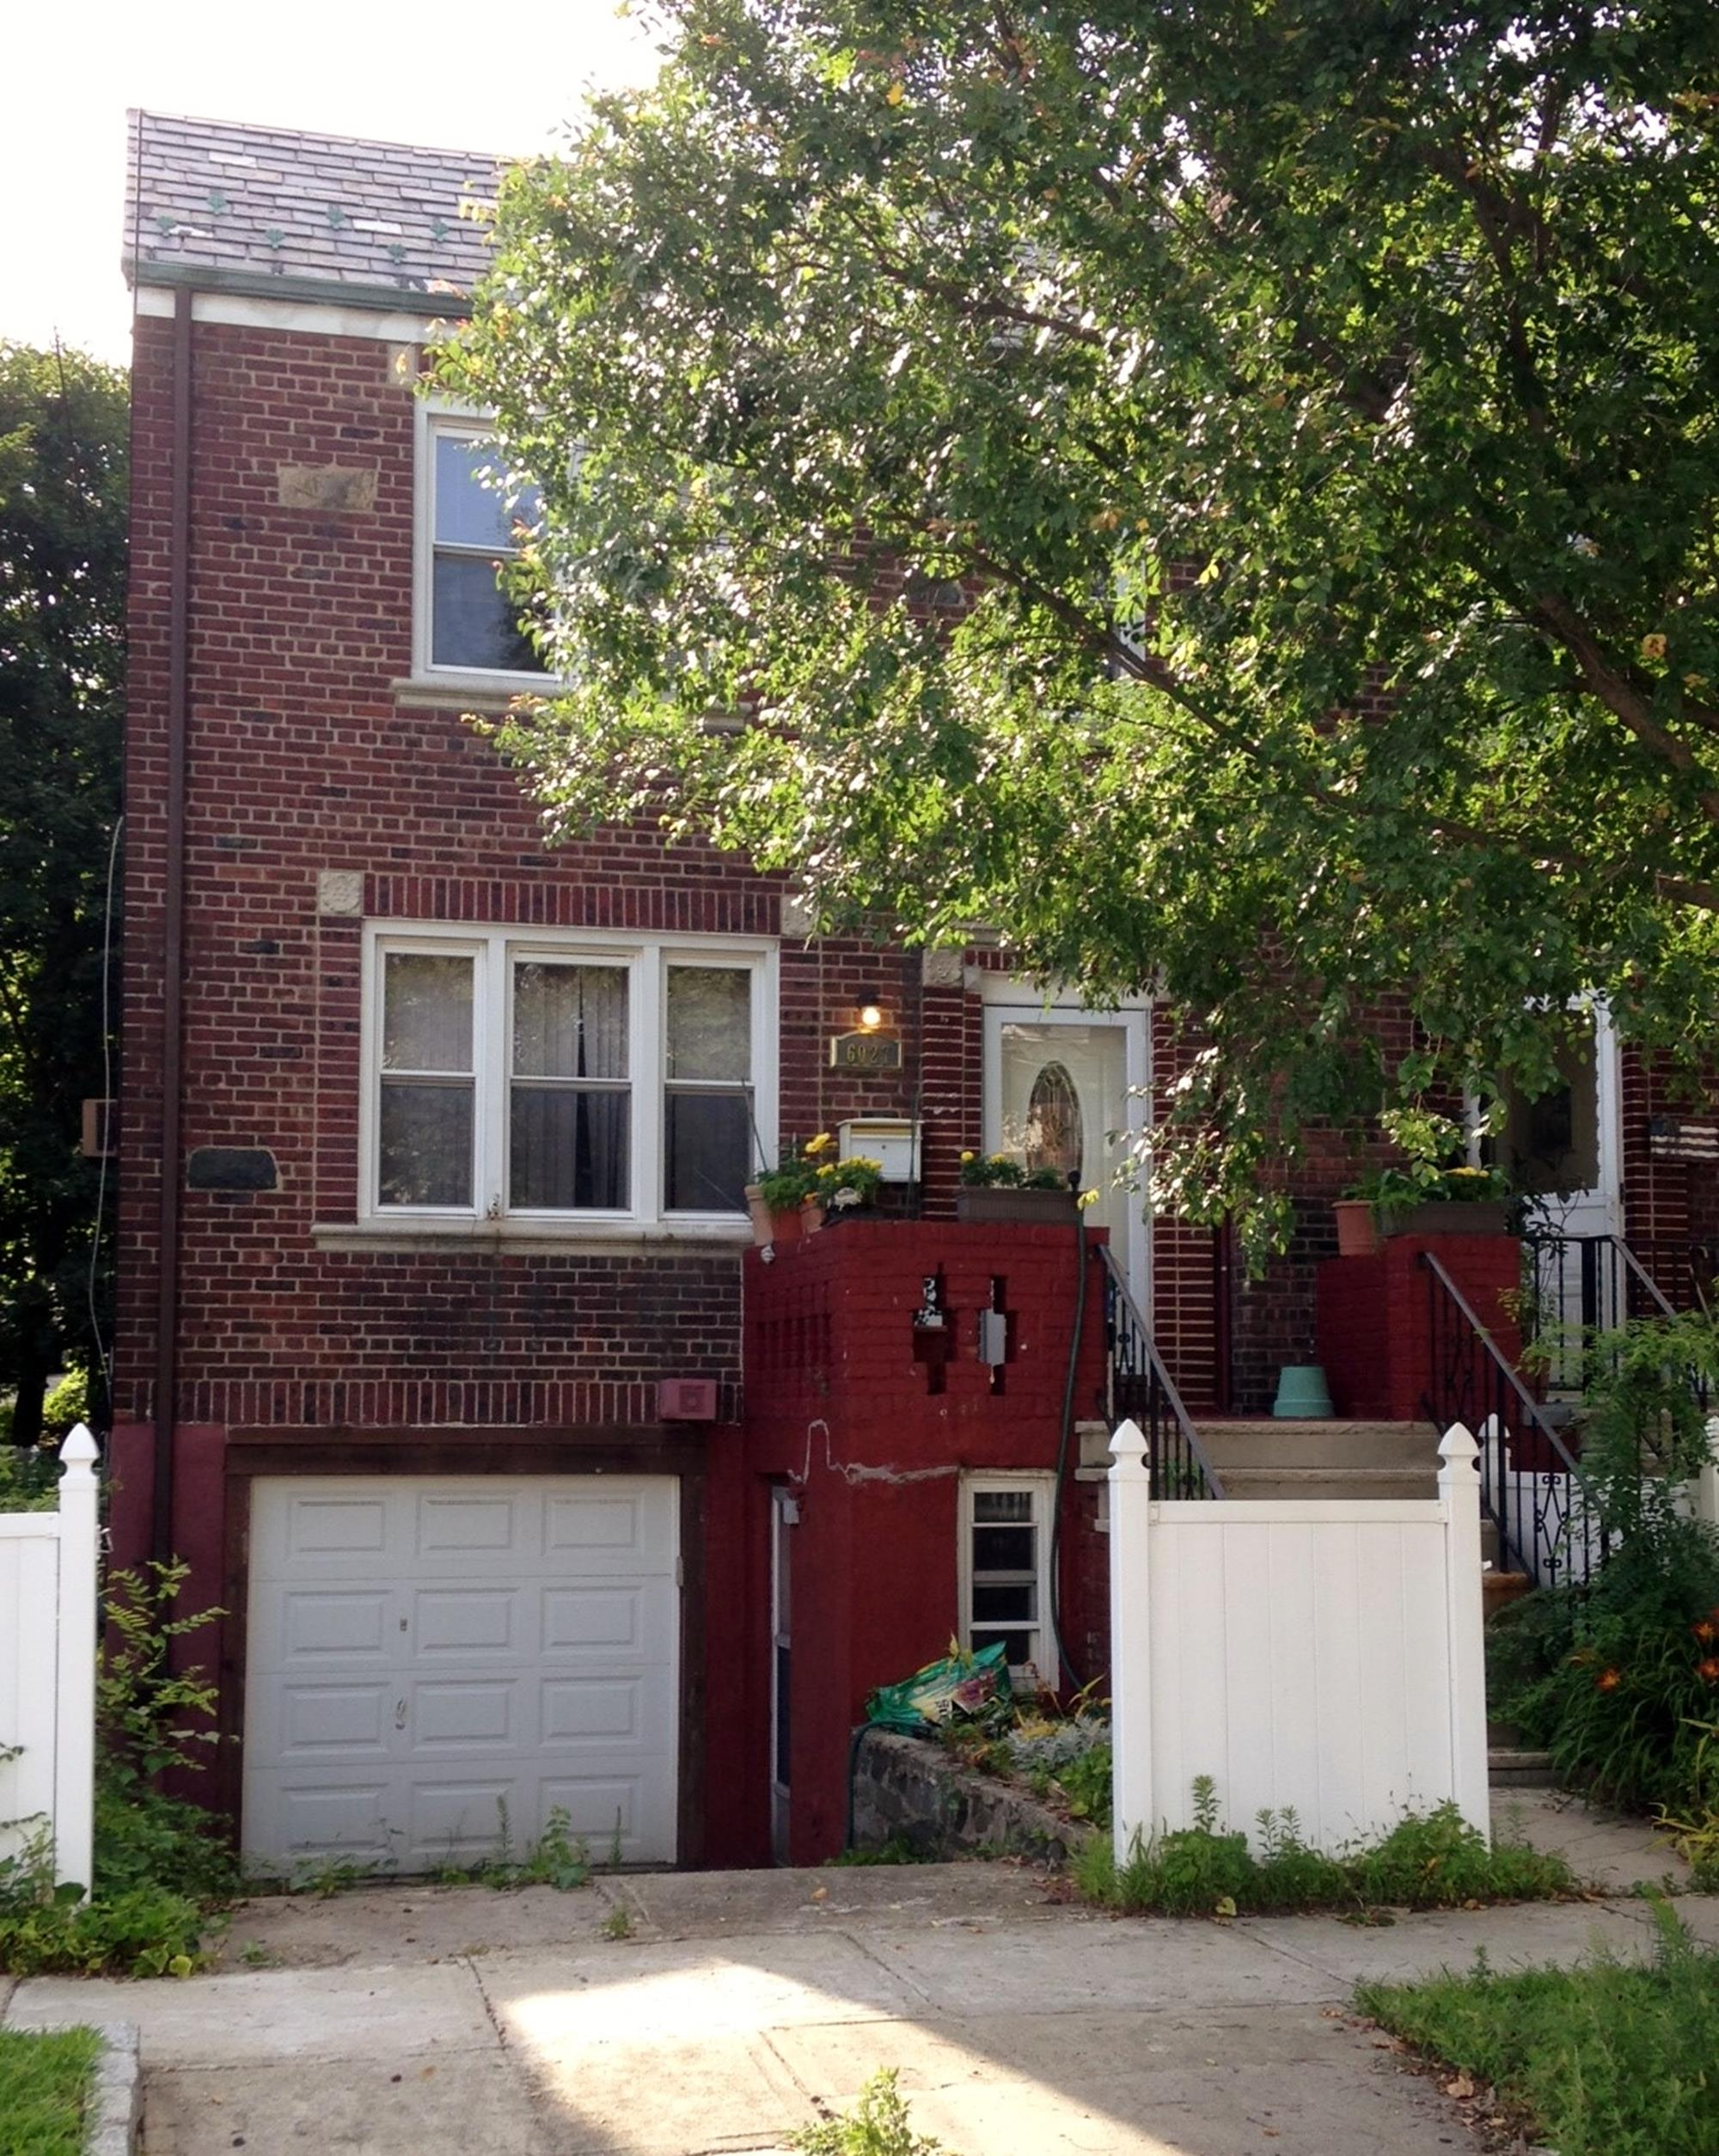 3-Bd. Brick House w/ Rear Deck & Yard on Delafield Ave.